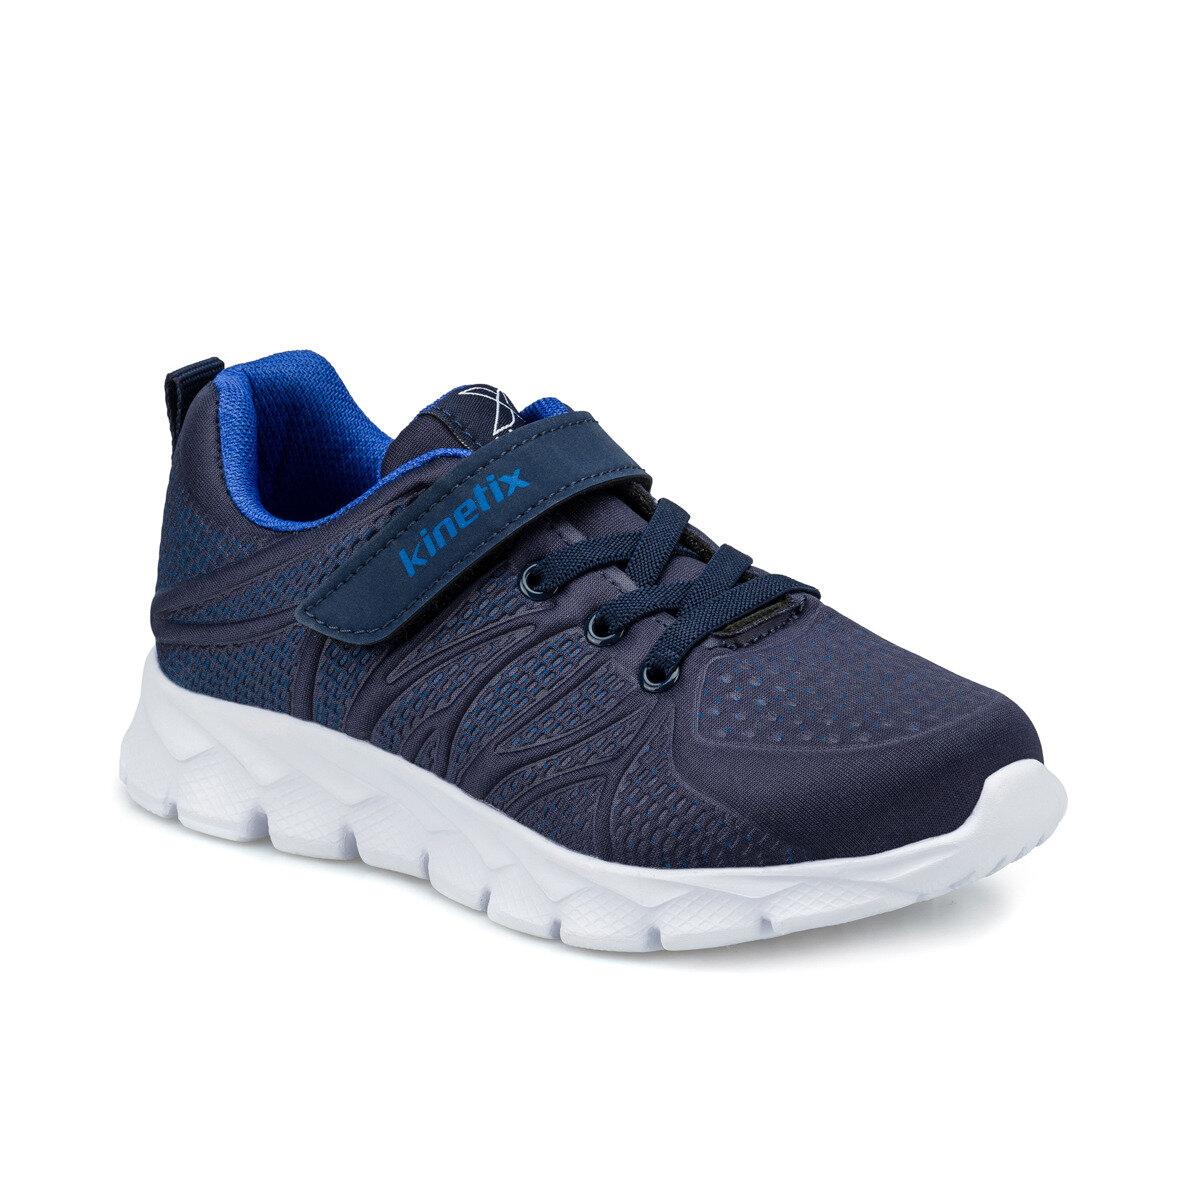 FLO MAMBA Navy Blue Male Child Hiking Shoes KINETIX